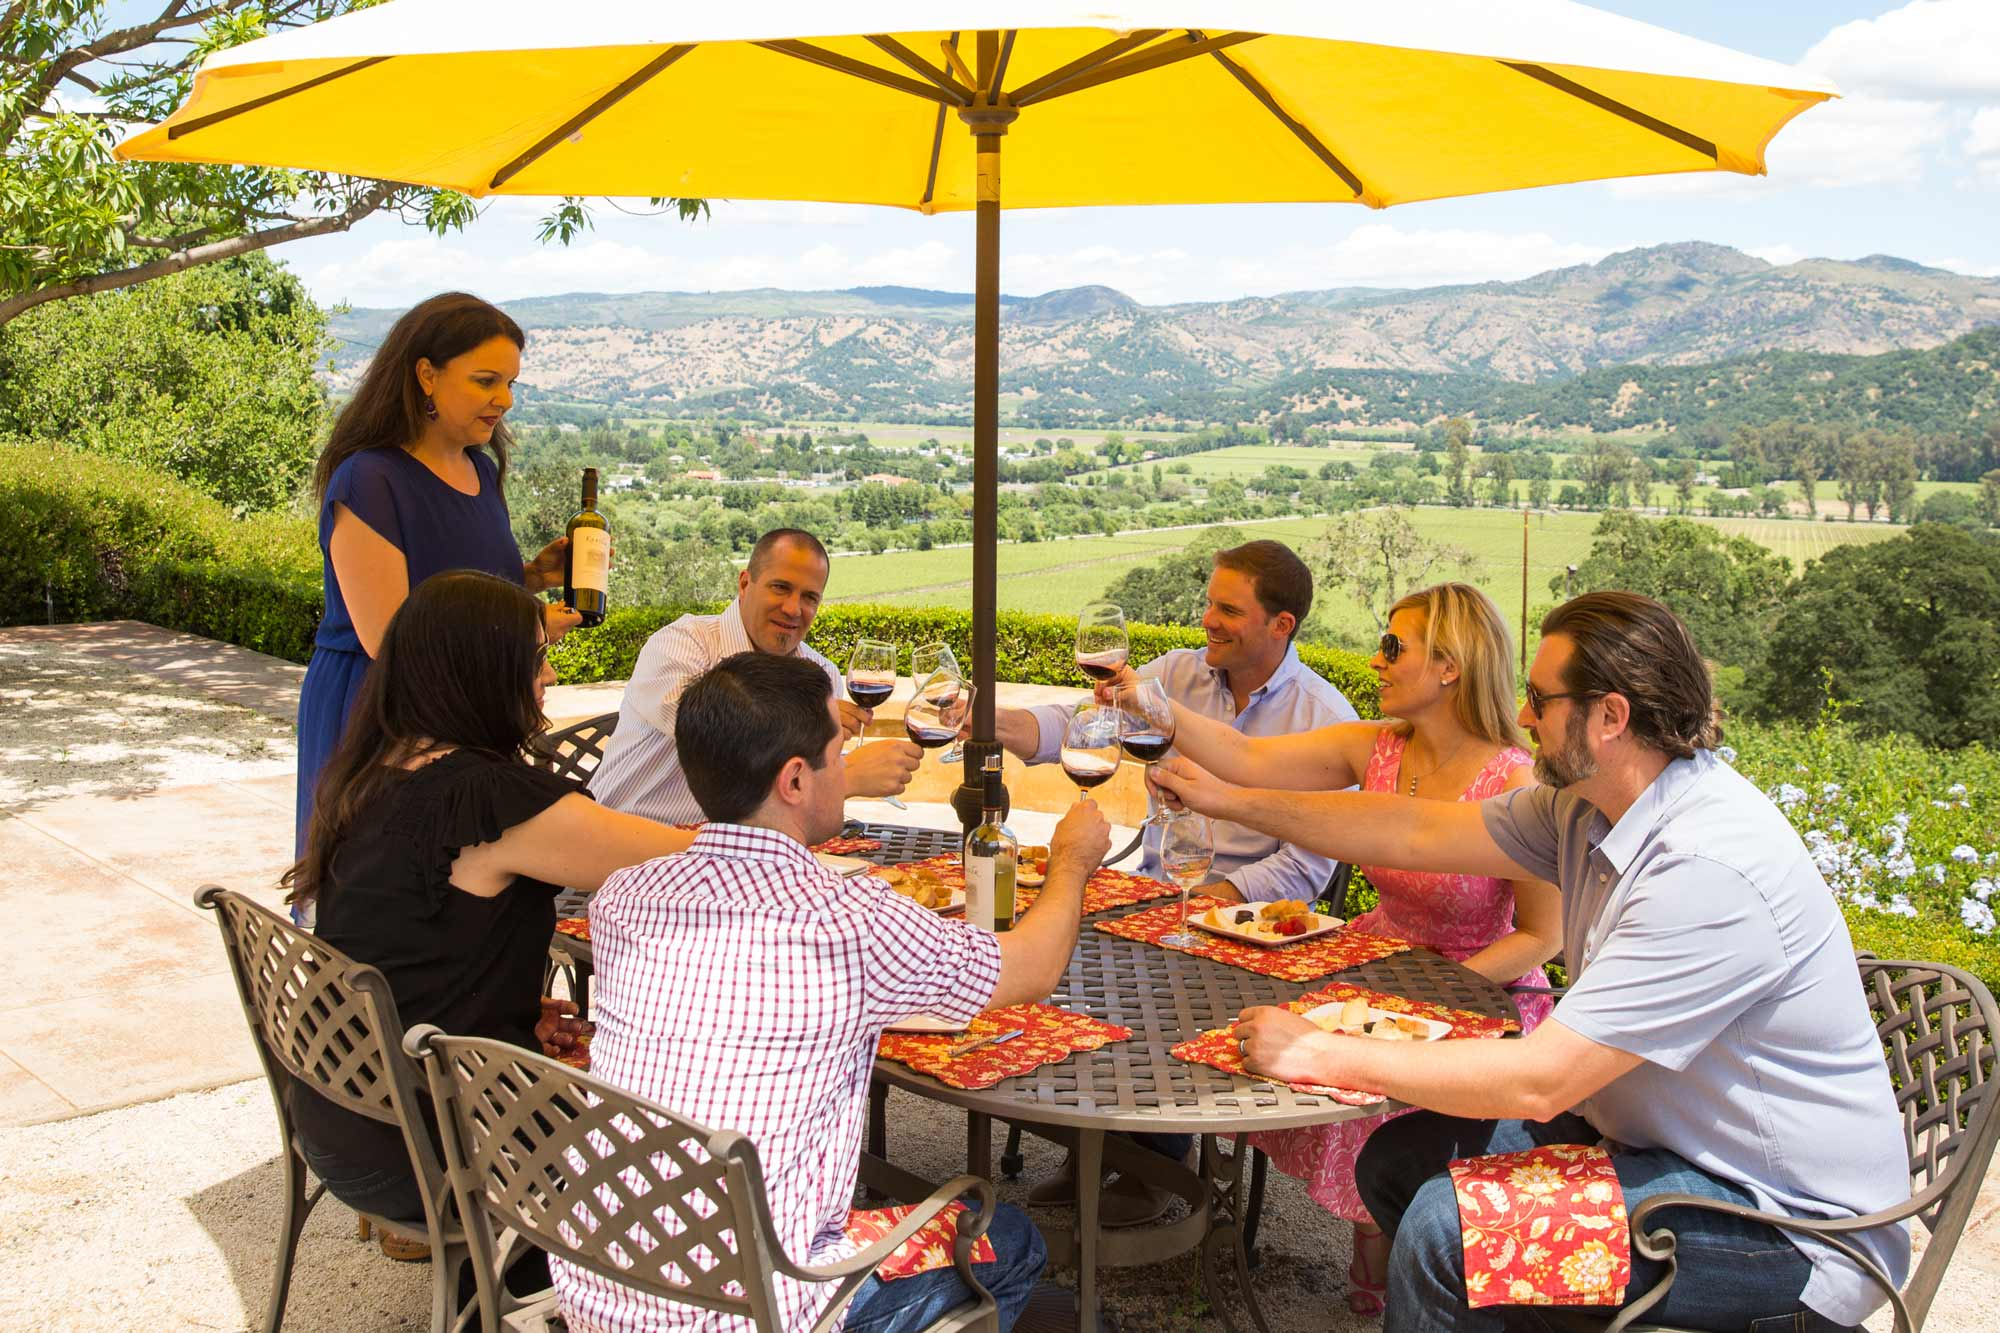 A Wine Society group tasting at Keever Vineyards in Yountville, California - Napa Valley